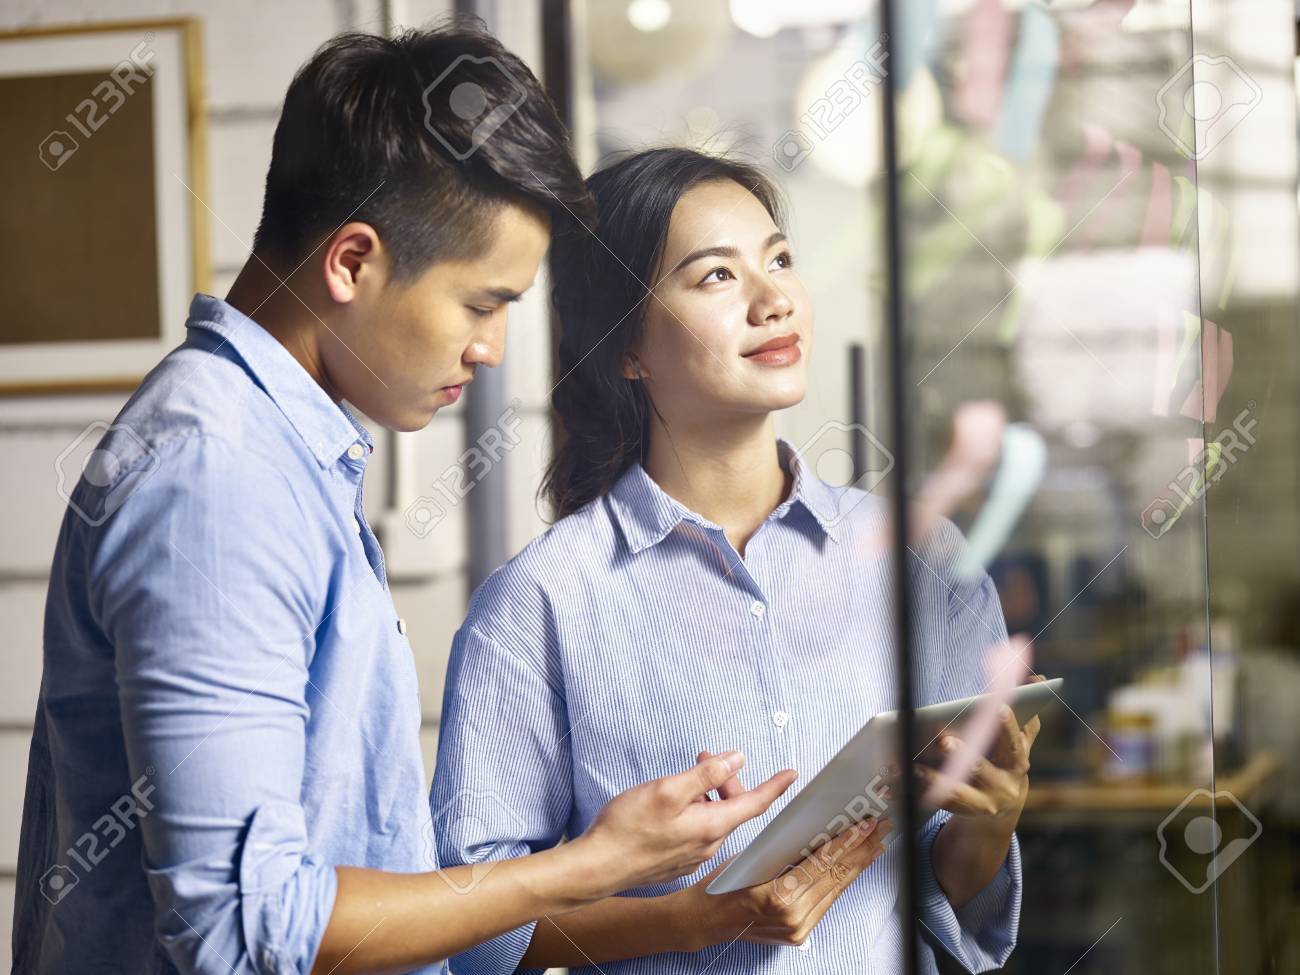 young asian businessman and businesswoman working together making a business plan using adhesive notes in office. - 91431254